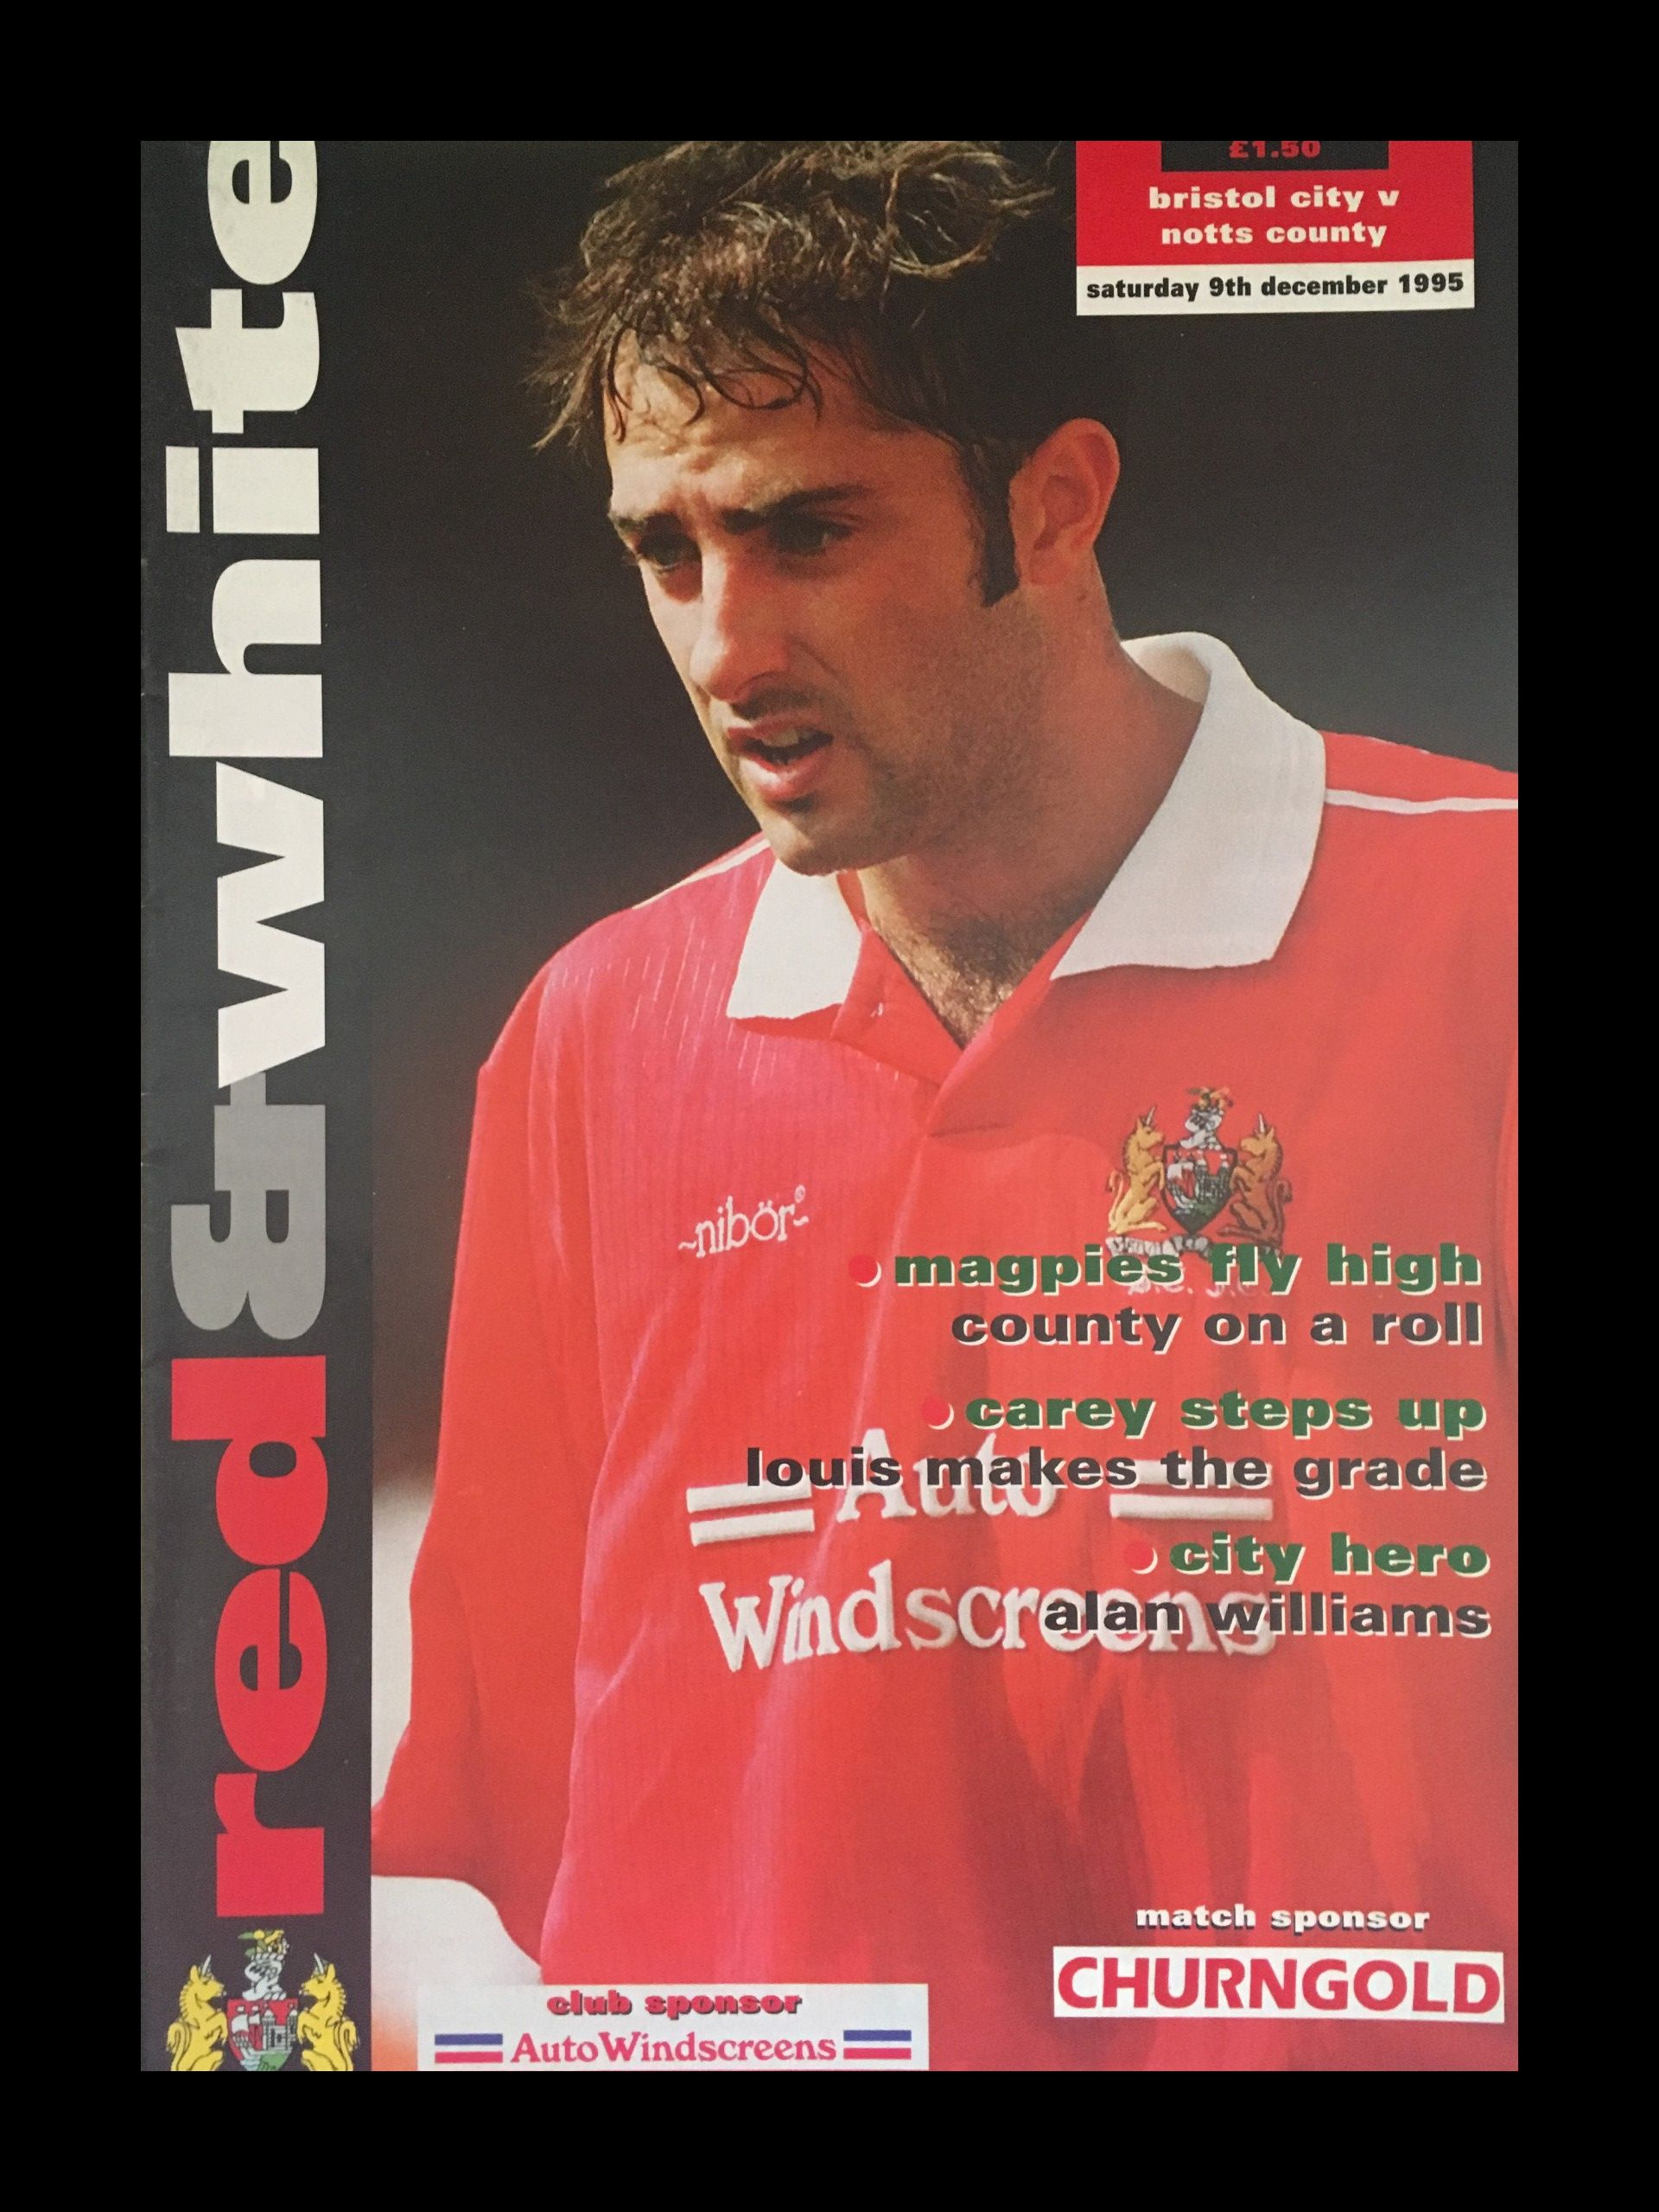 Bristol City v Notts County 09-12-1995 Programme